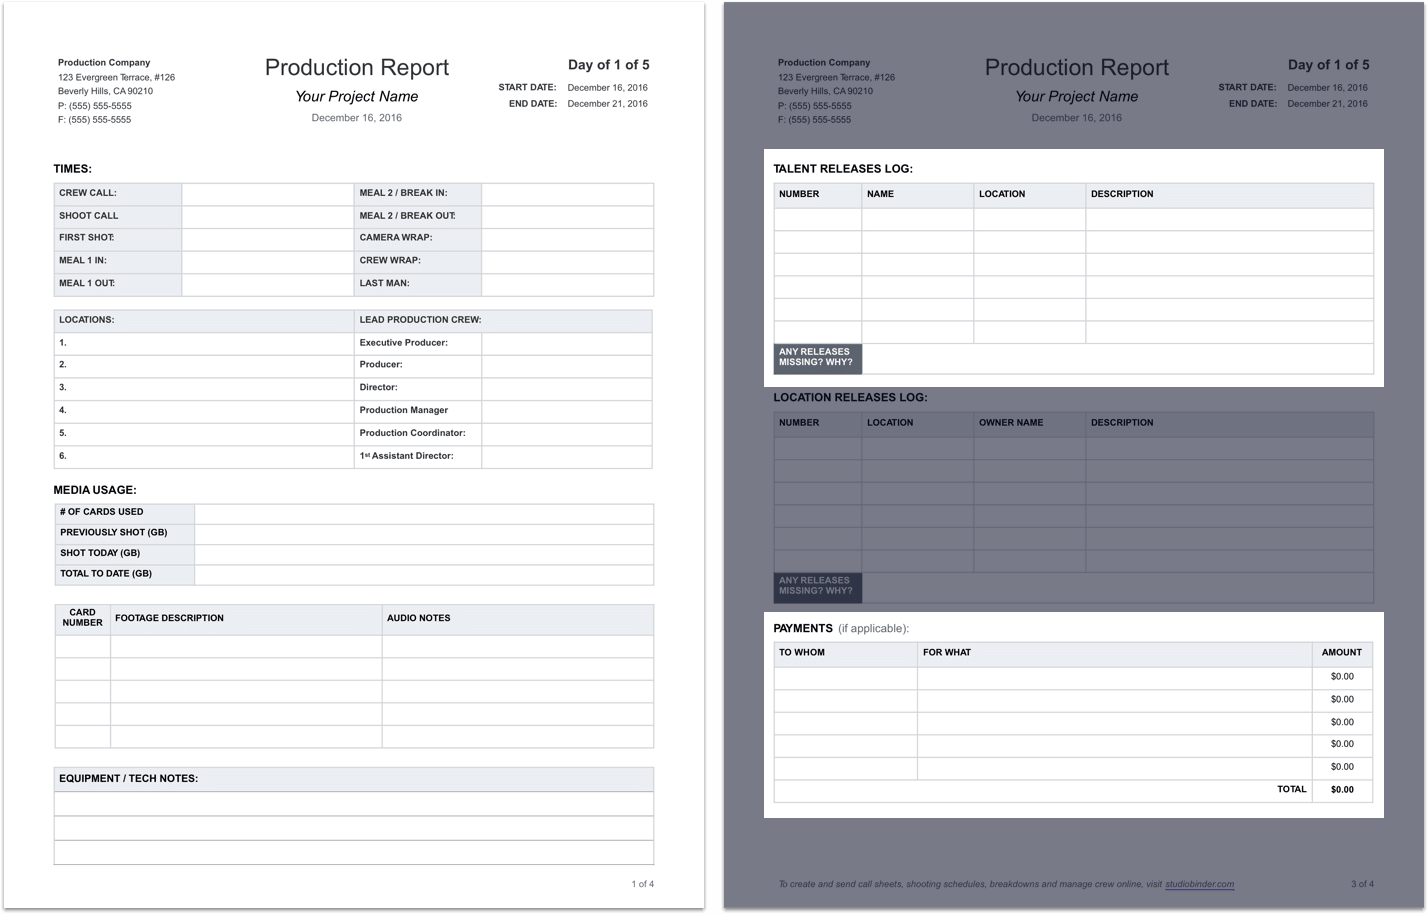 Daily Production Report Template   Tear Sheet   StudioBinder